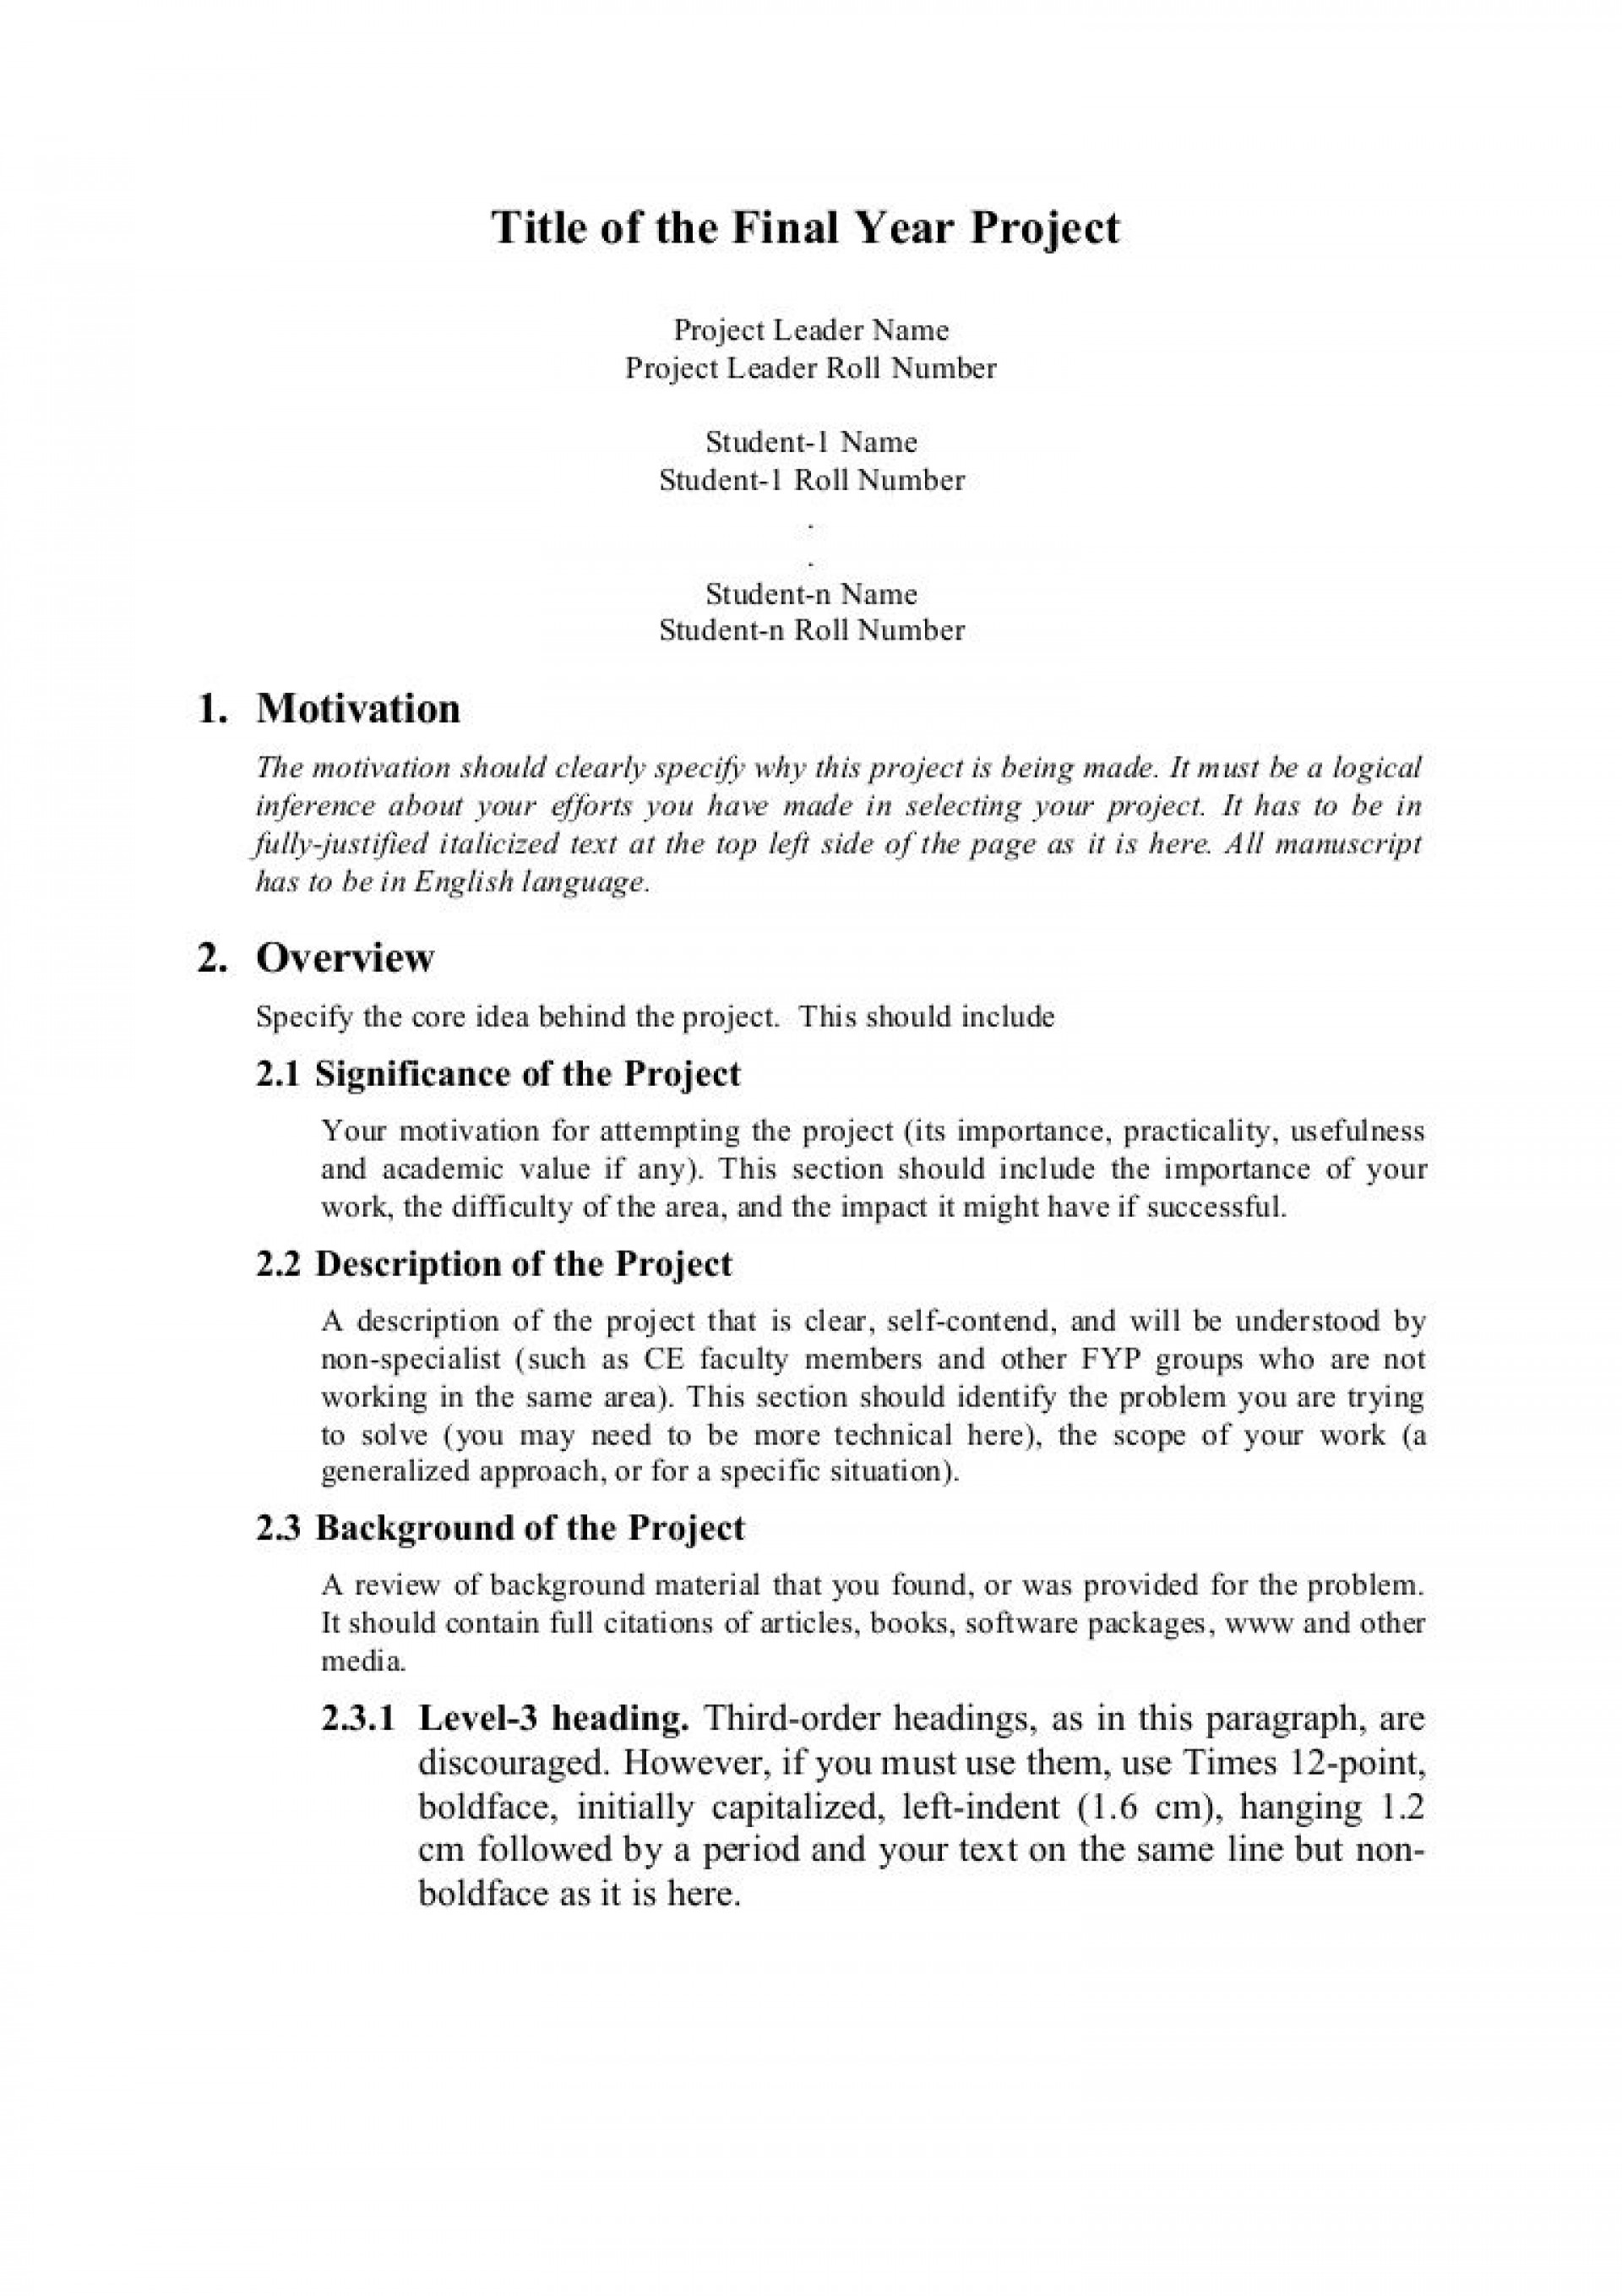 007 Marvelou Research Project Proposal Sample Pdf High Def  Investigatory1920